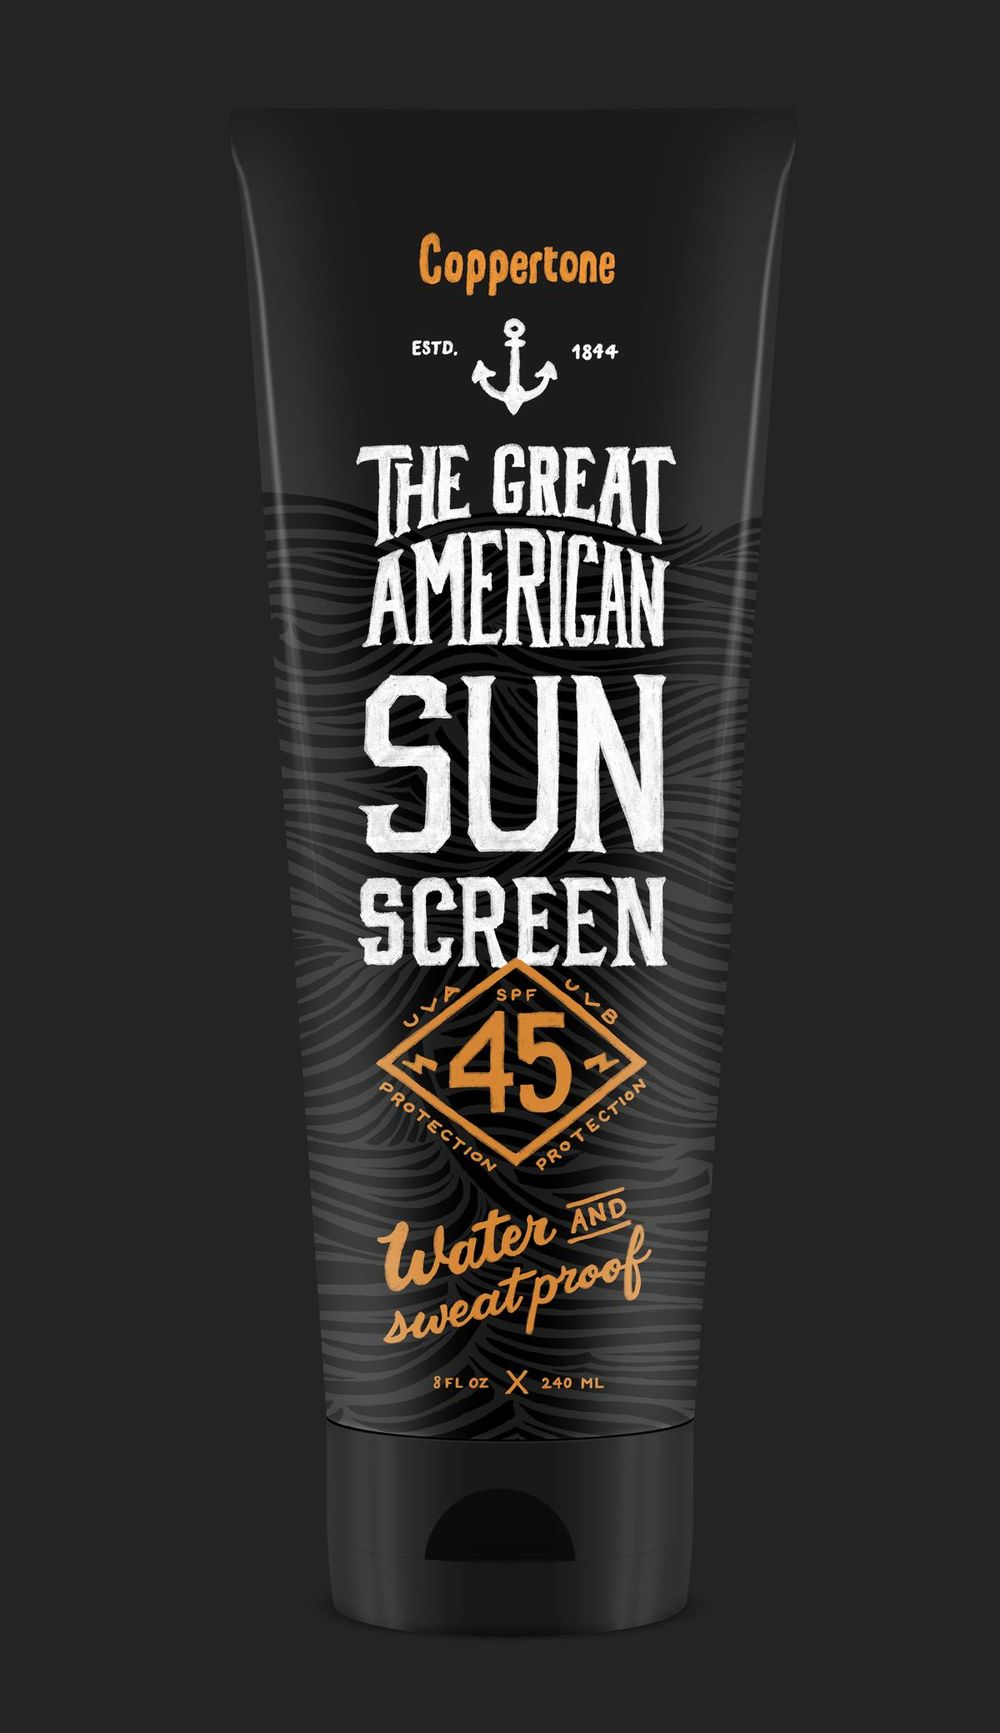 Sunscreen Label  - image 7 - student project